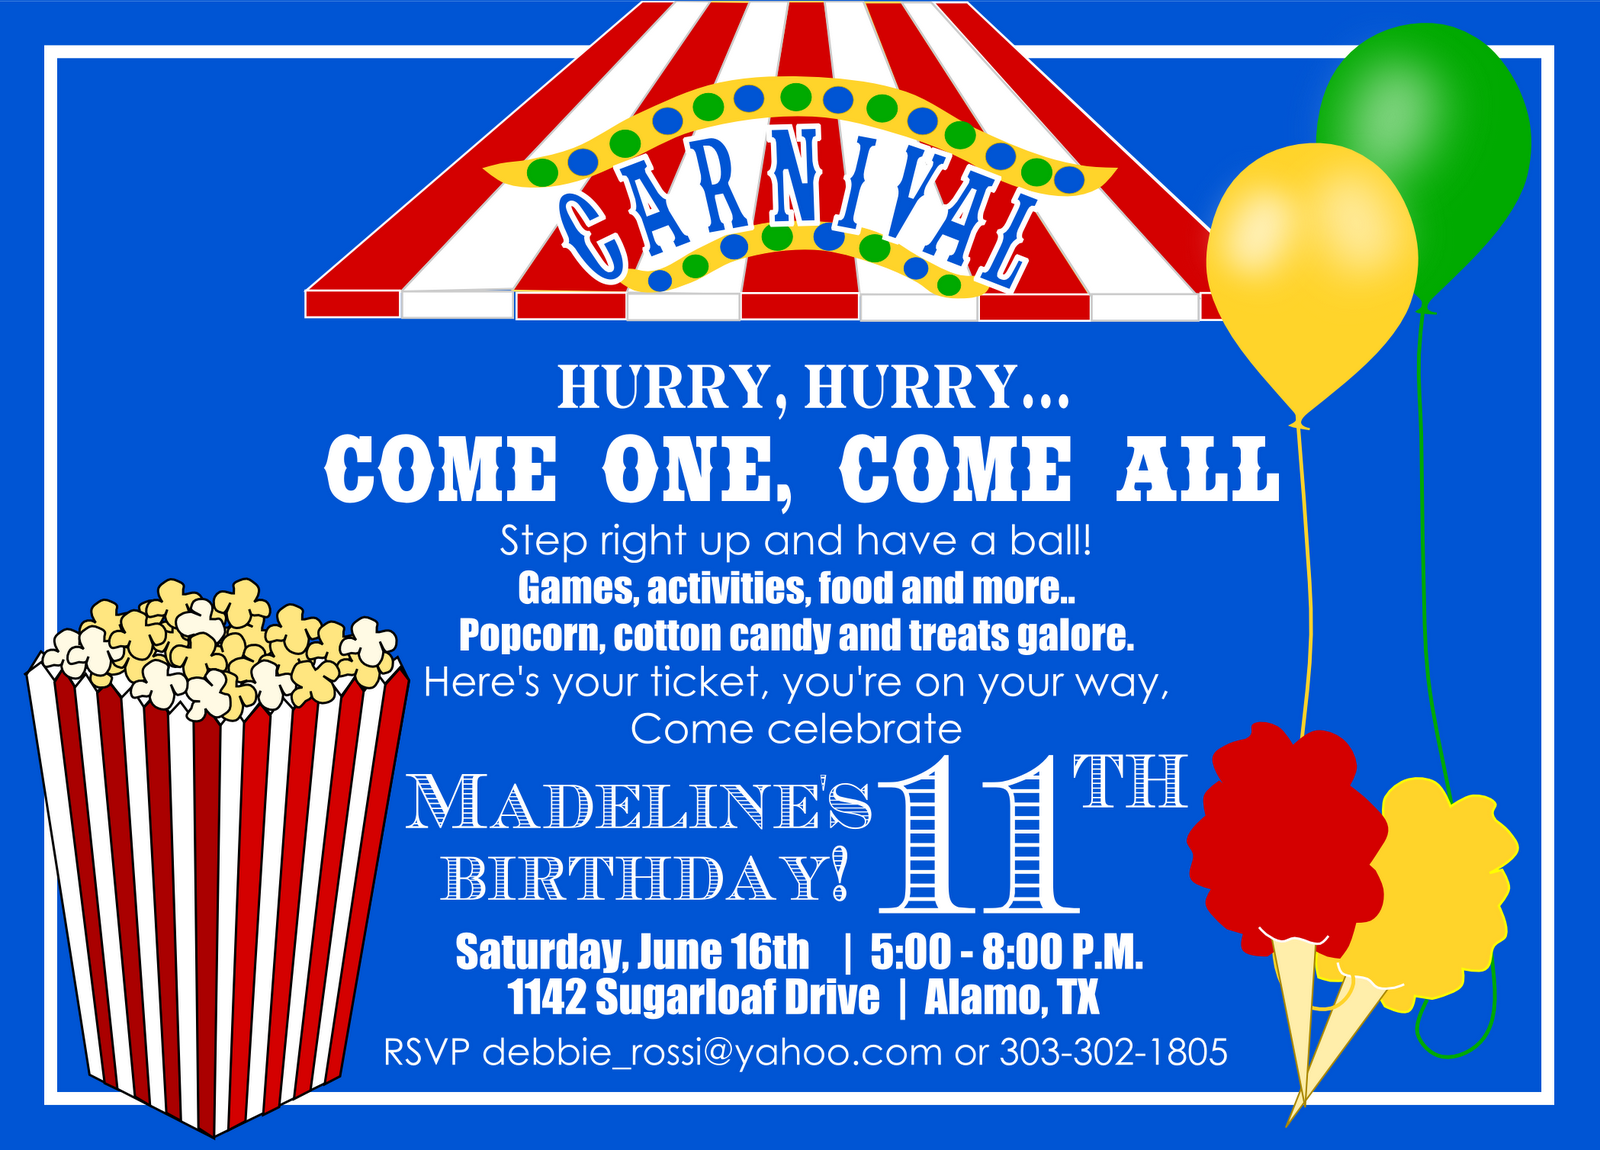 Carnival birthday invitation and ticket for Debbie – Free Printable Carnival Birthday Invitations